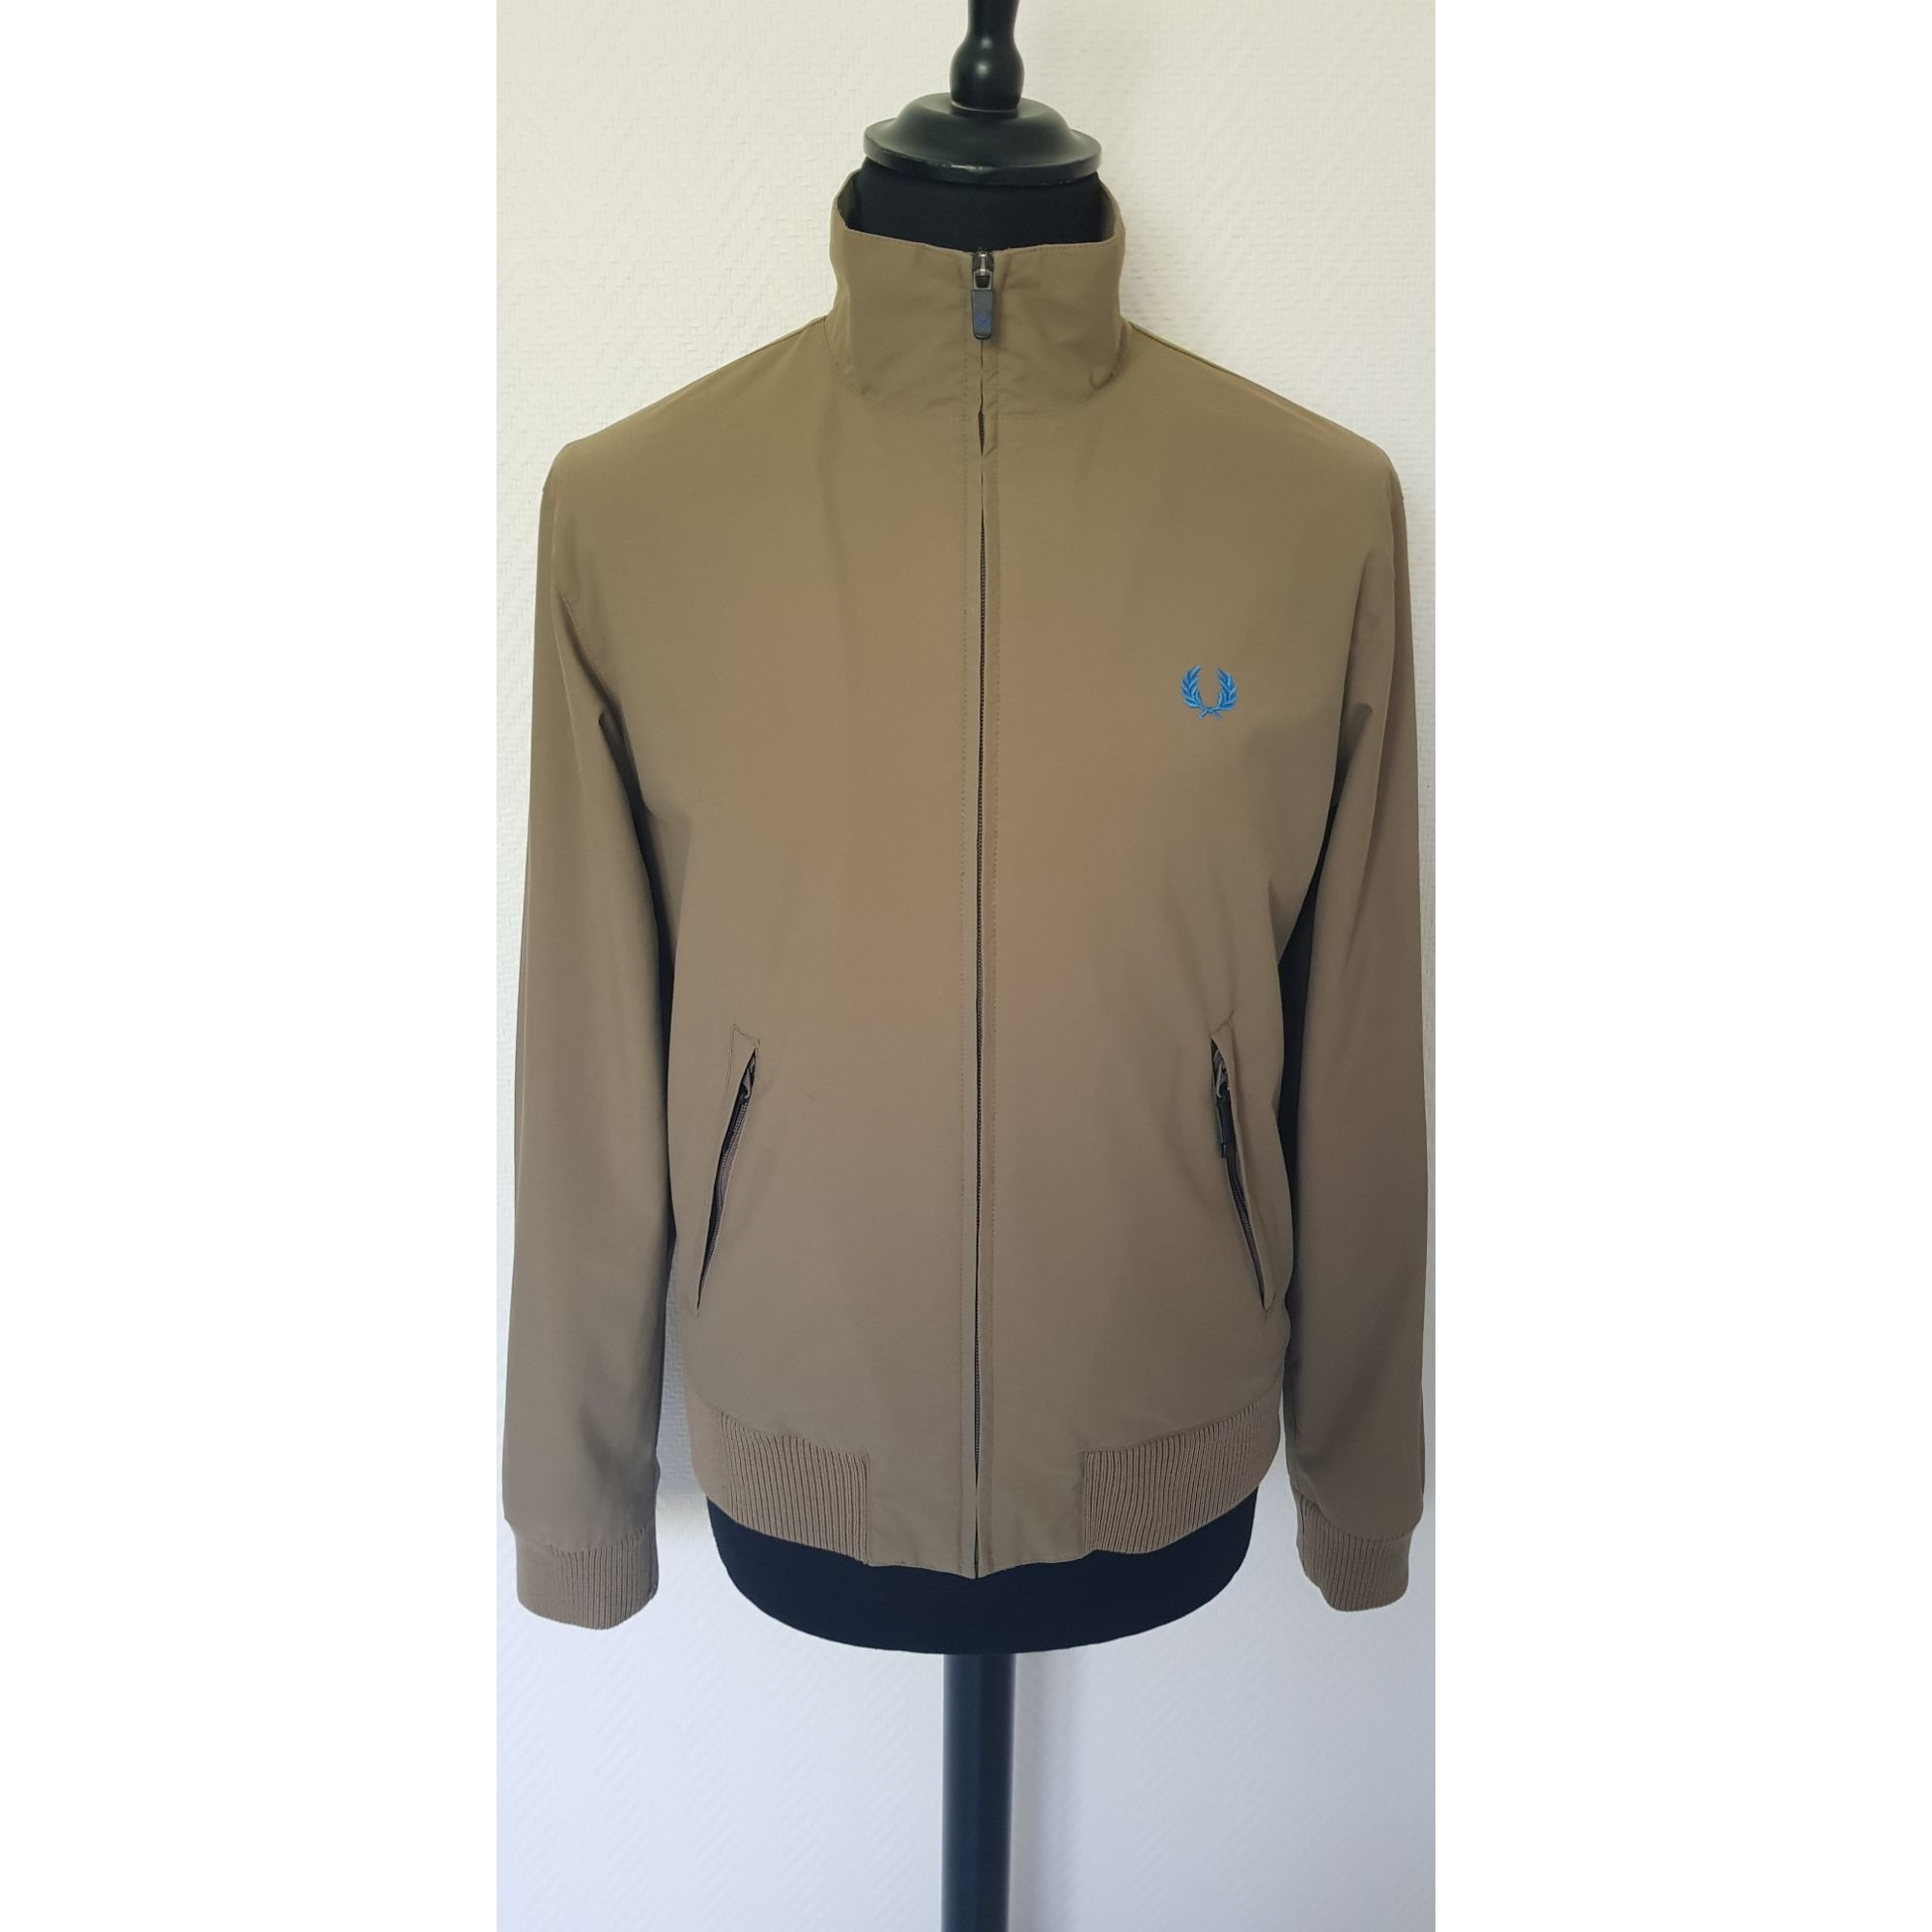 Zipped Jacket FRED PERRY Beige, camel